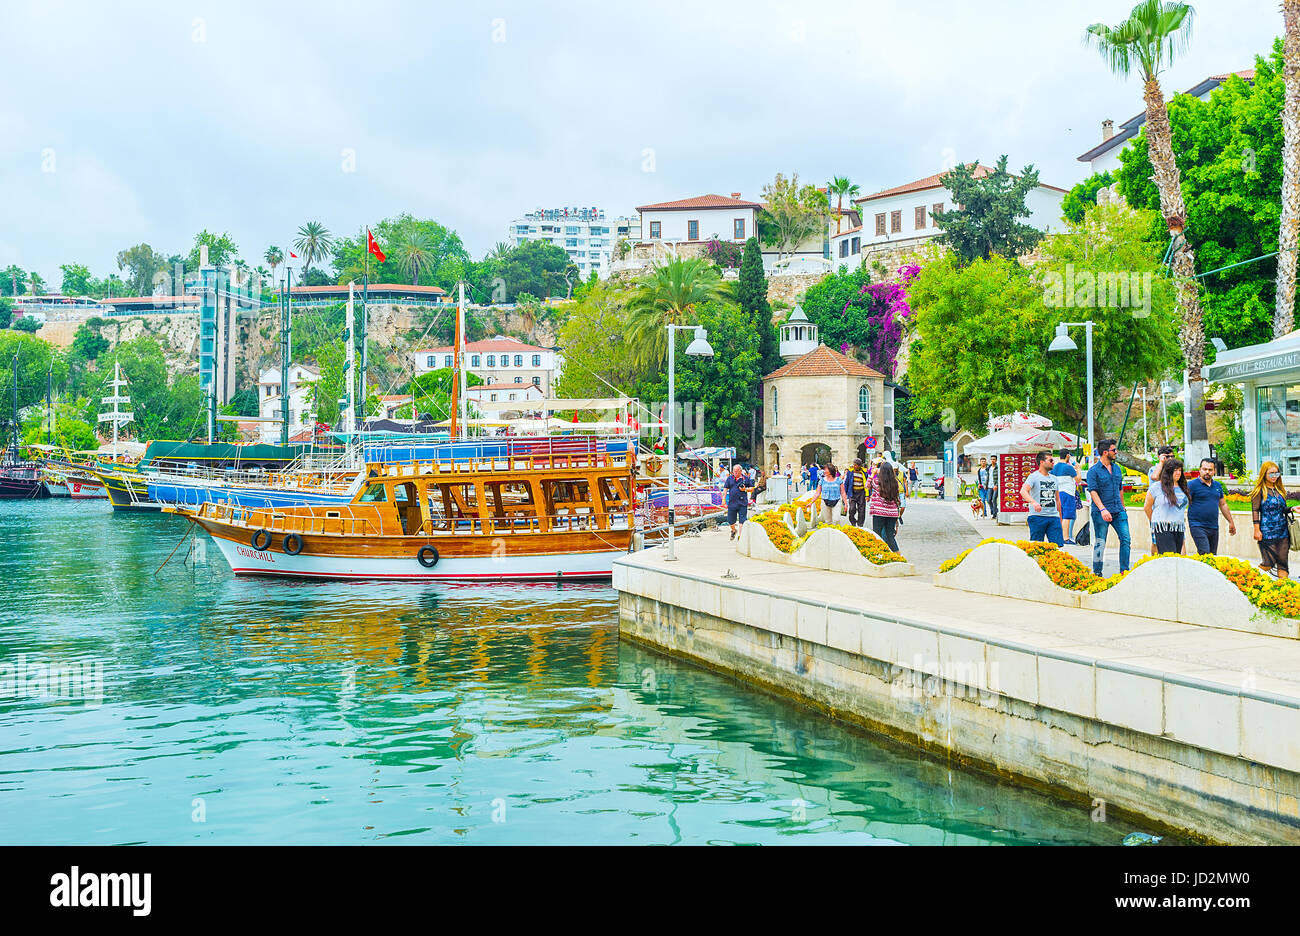 ANTALYA, TURKEY - MAY 6, 2017: The view of old marina with the preserved fortress walls, lush greenery, pleasure - Stock Image